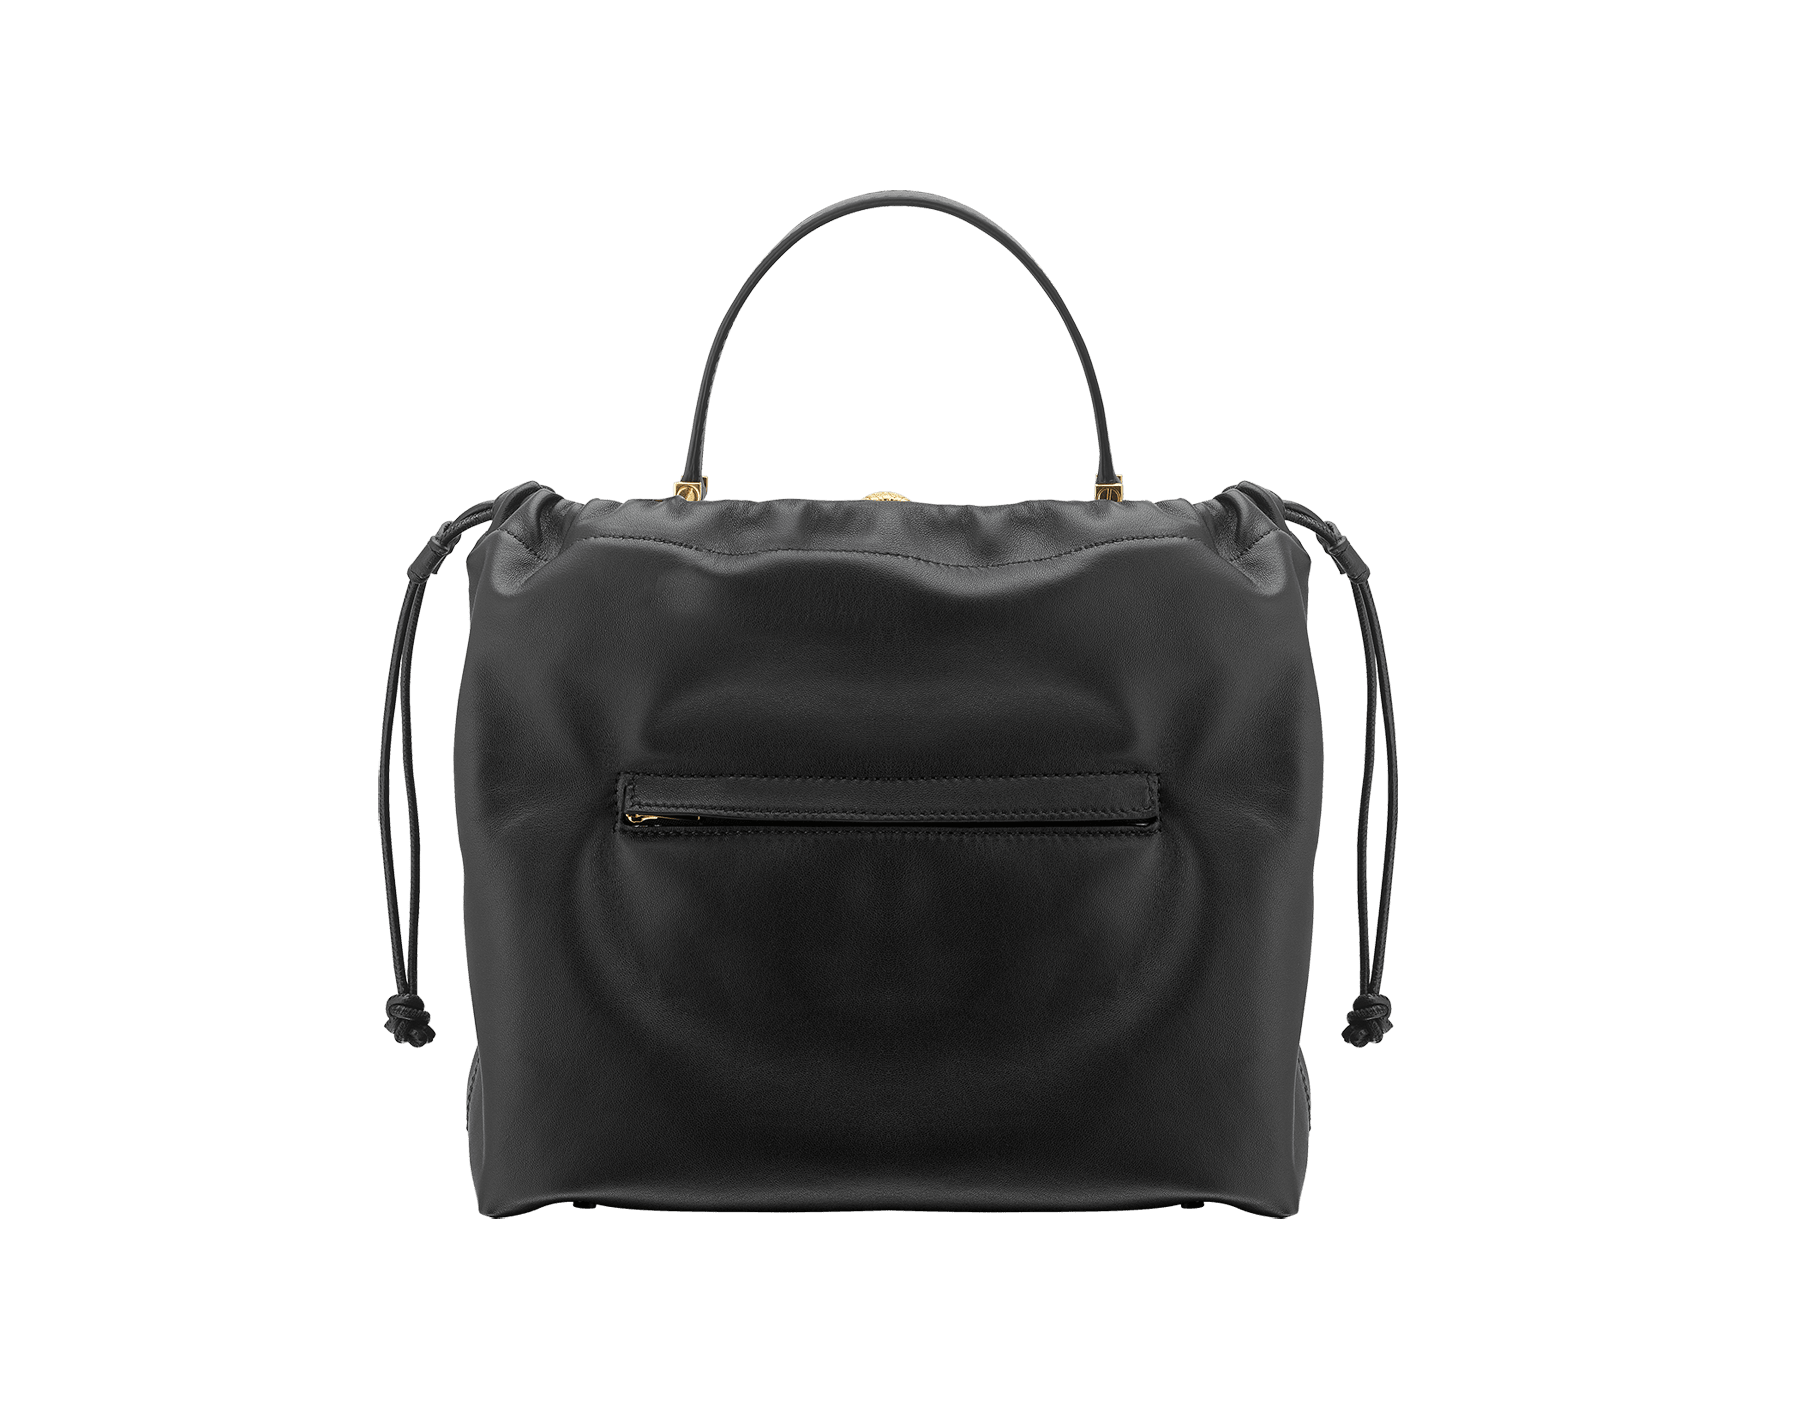 Alexander Wang x Bvlgari 2 in 1 satchel bag in black calf leather with black lambskin drawstring dust bag exterior. New Serpenti head closure in antique gold plated brass with tempting red enamel eyes. Limited edition. 288747 image 3